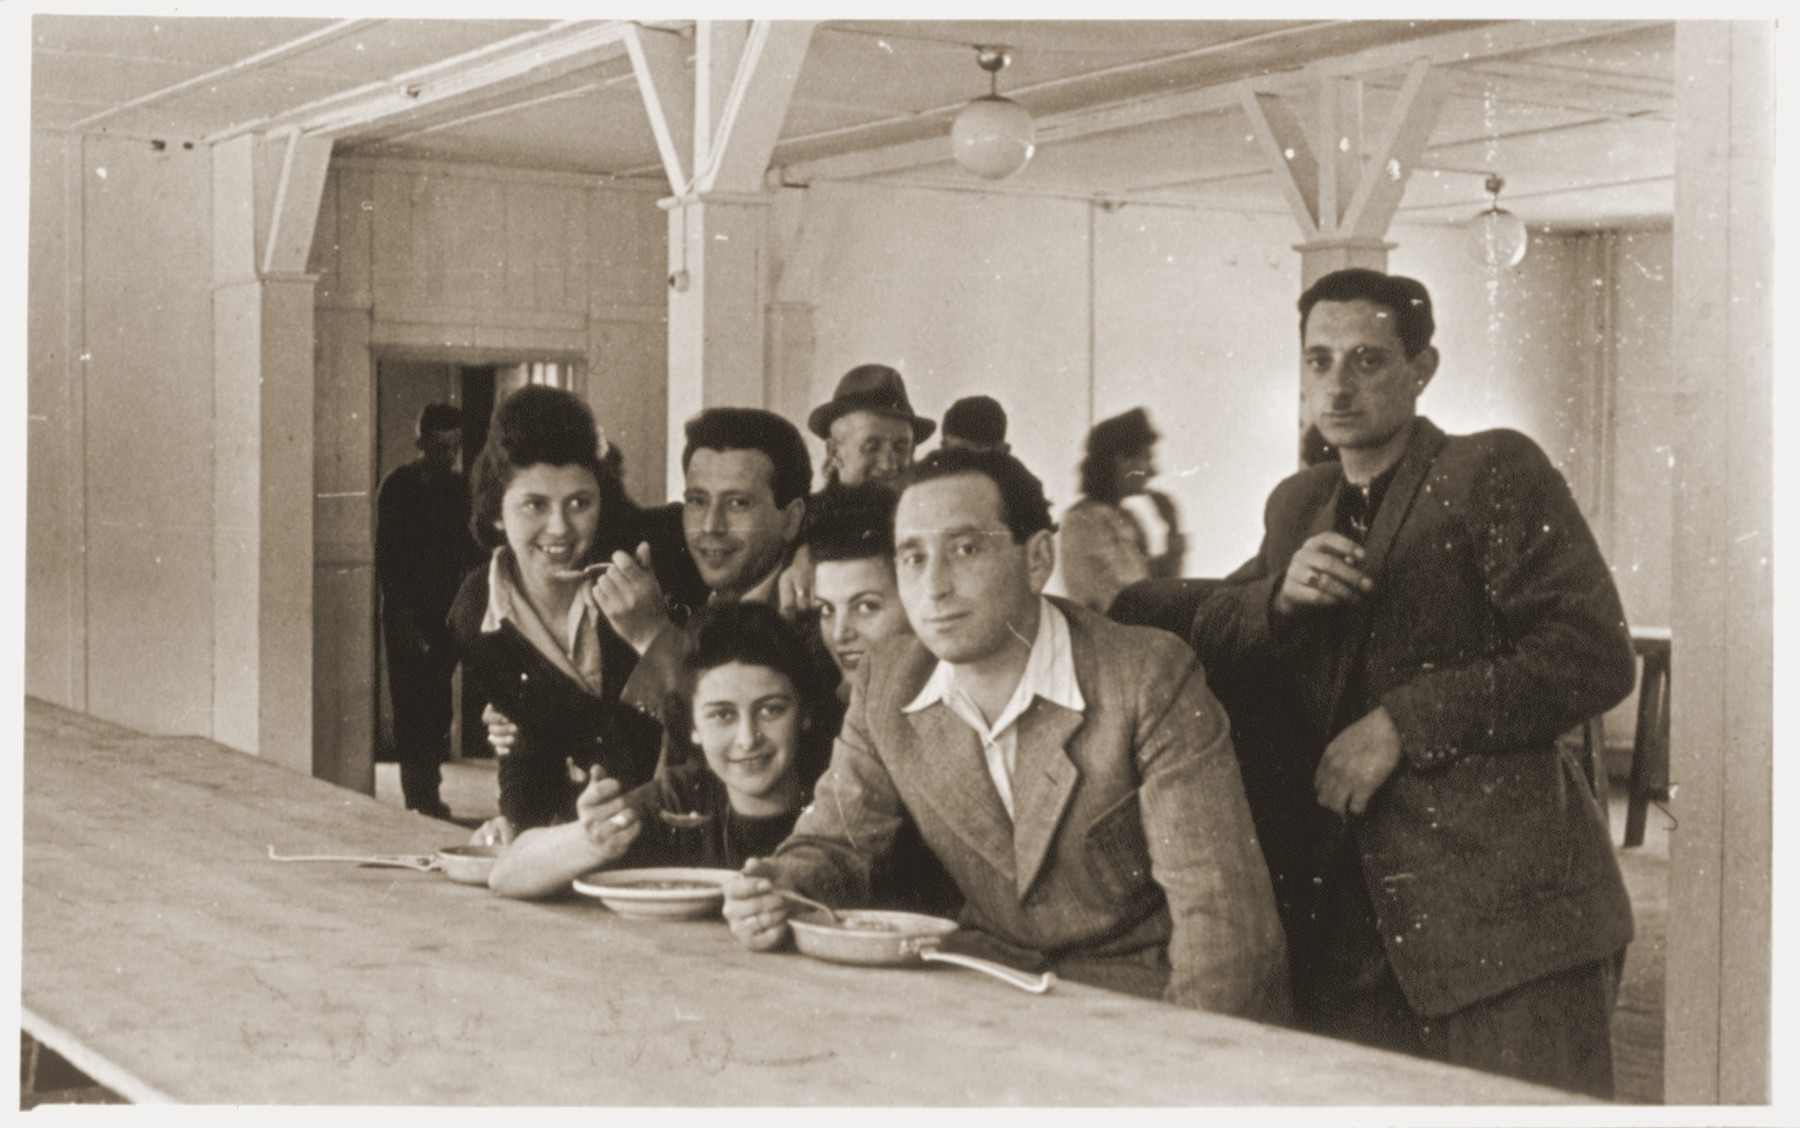 A group of Jewish DPs eat in the mess hall at the Schlachtensee displaced persons camp.    Seated with bowls before them are Shmuel (Miles) and Rozalia (Chris) Lerman.